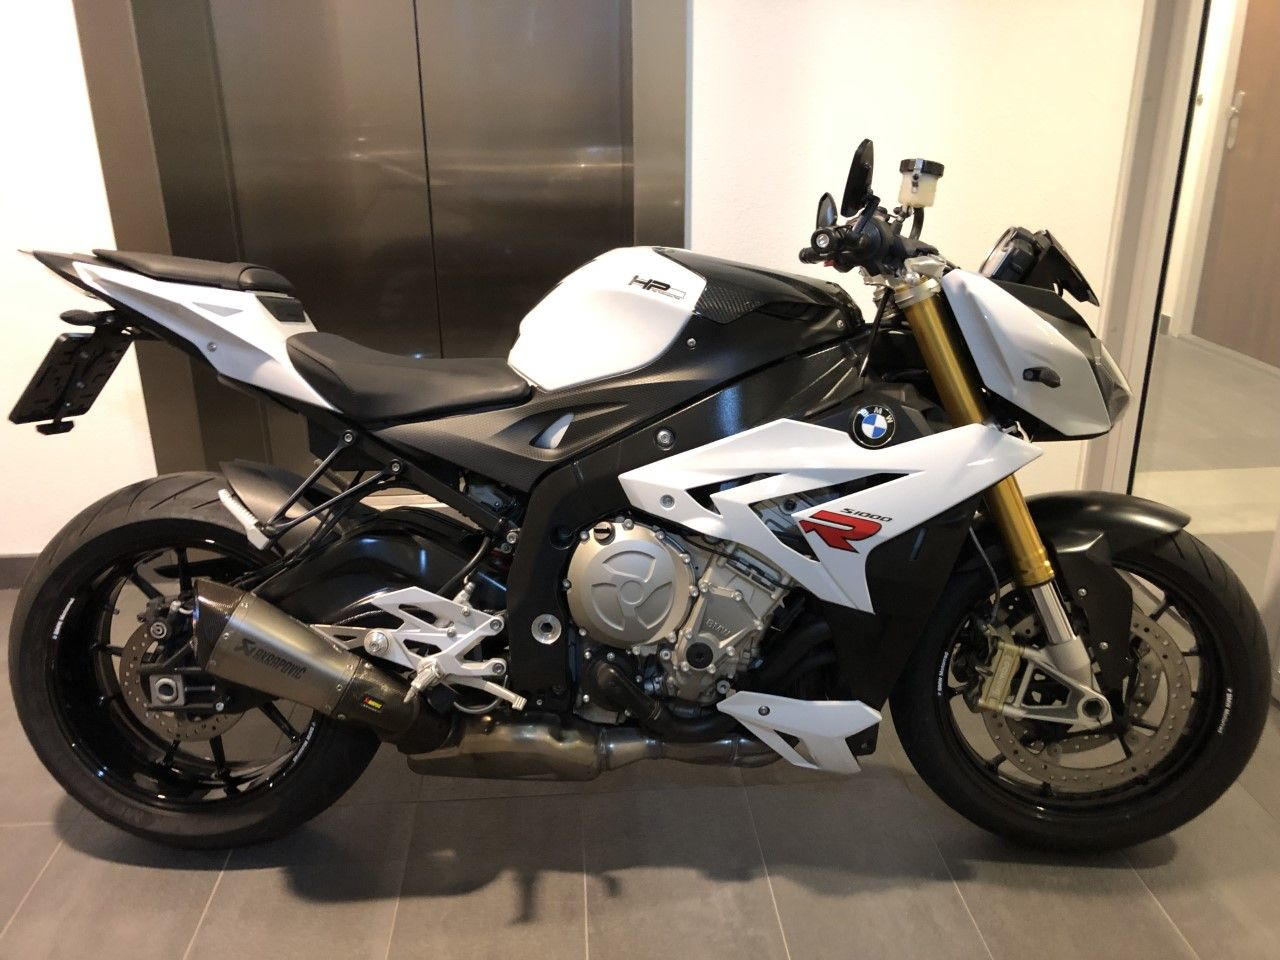 BMW S1000R less is more, tail tidy, bar-end mirrors and Akra exhaust! #BMWS1000R